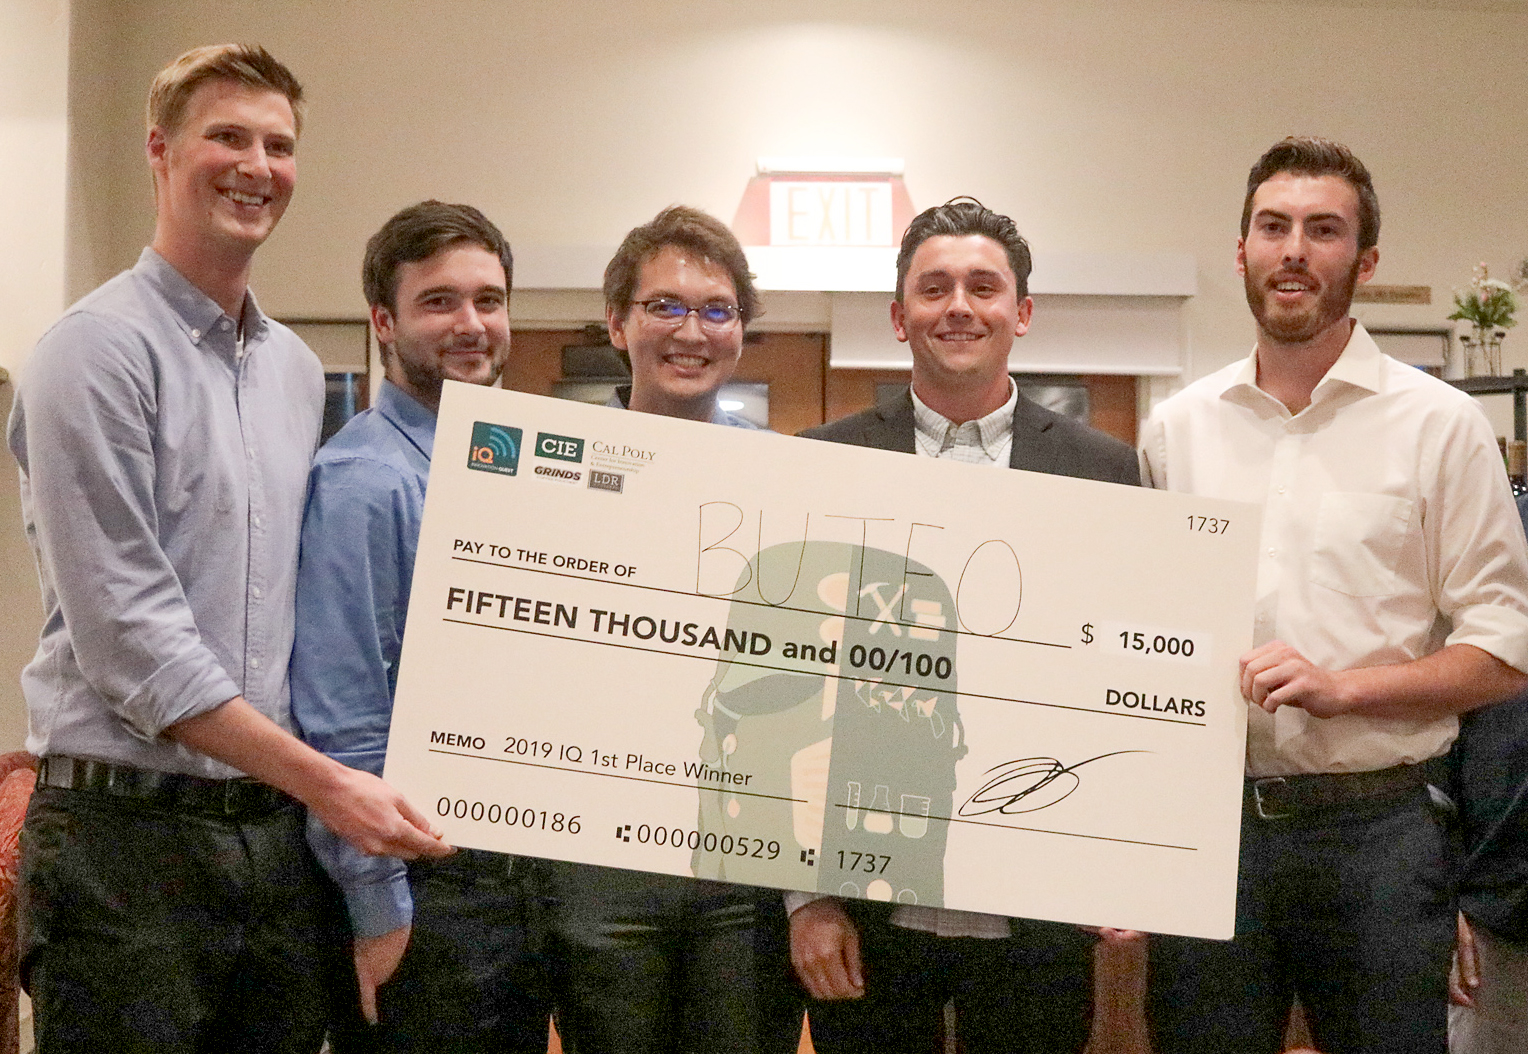 Members of Buteo, a student innovation project that is developing a bird detection and deterrent technology for berry crop farmers, took first place at Cal Poly Center for Innovation and Entrepreneurship's 14th annual Innovation Quest competition on April 27. From left are team members Ryan Dunn, Jackson Reznicek, Sean Wallace, Hayden Hudgins and Kyle Wuerch.